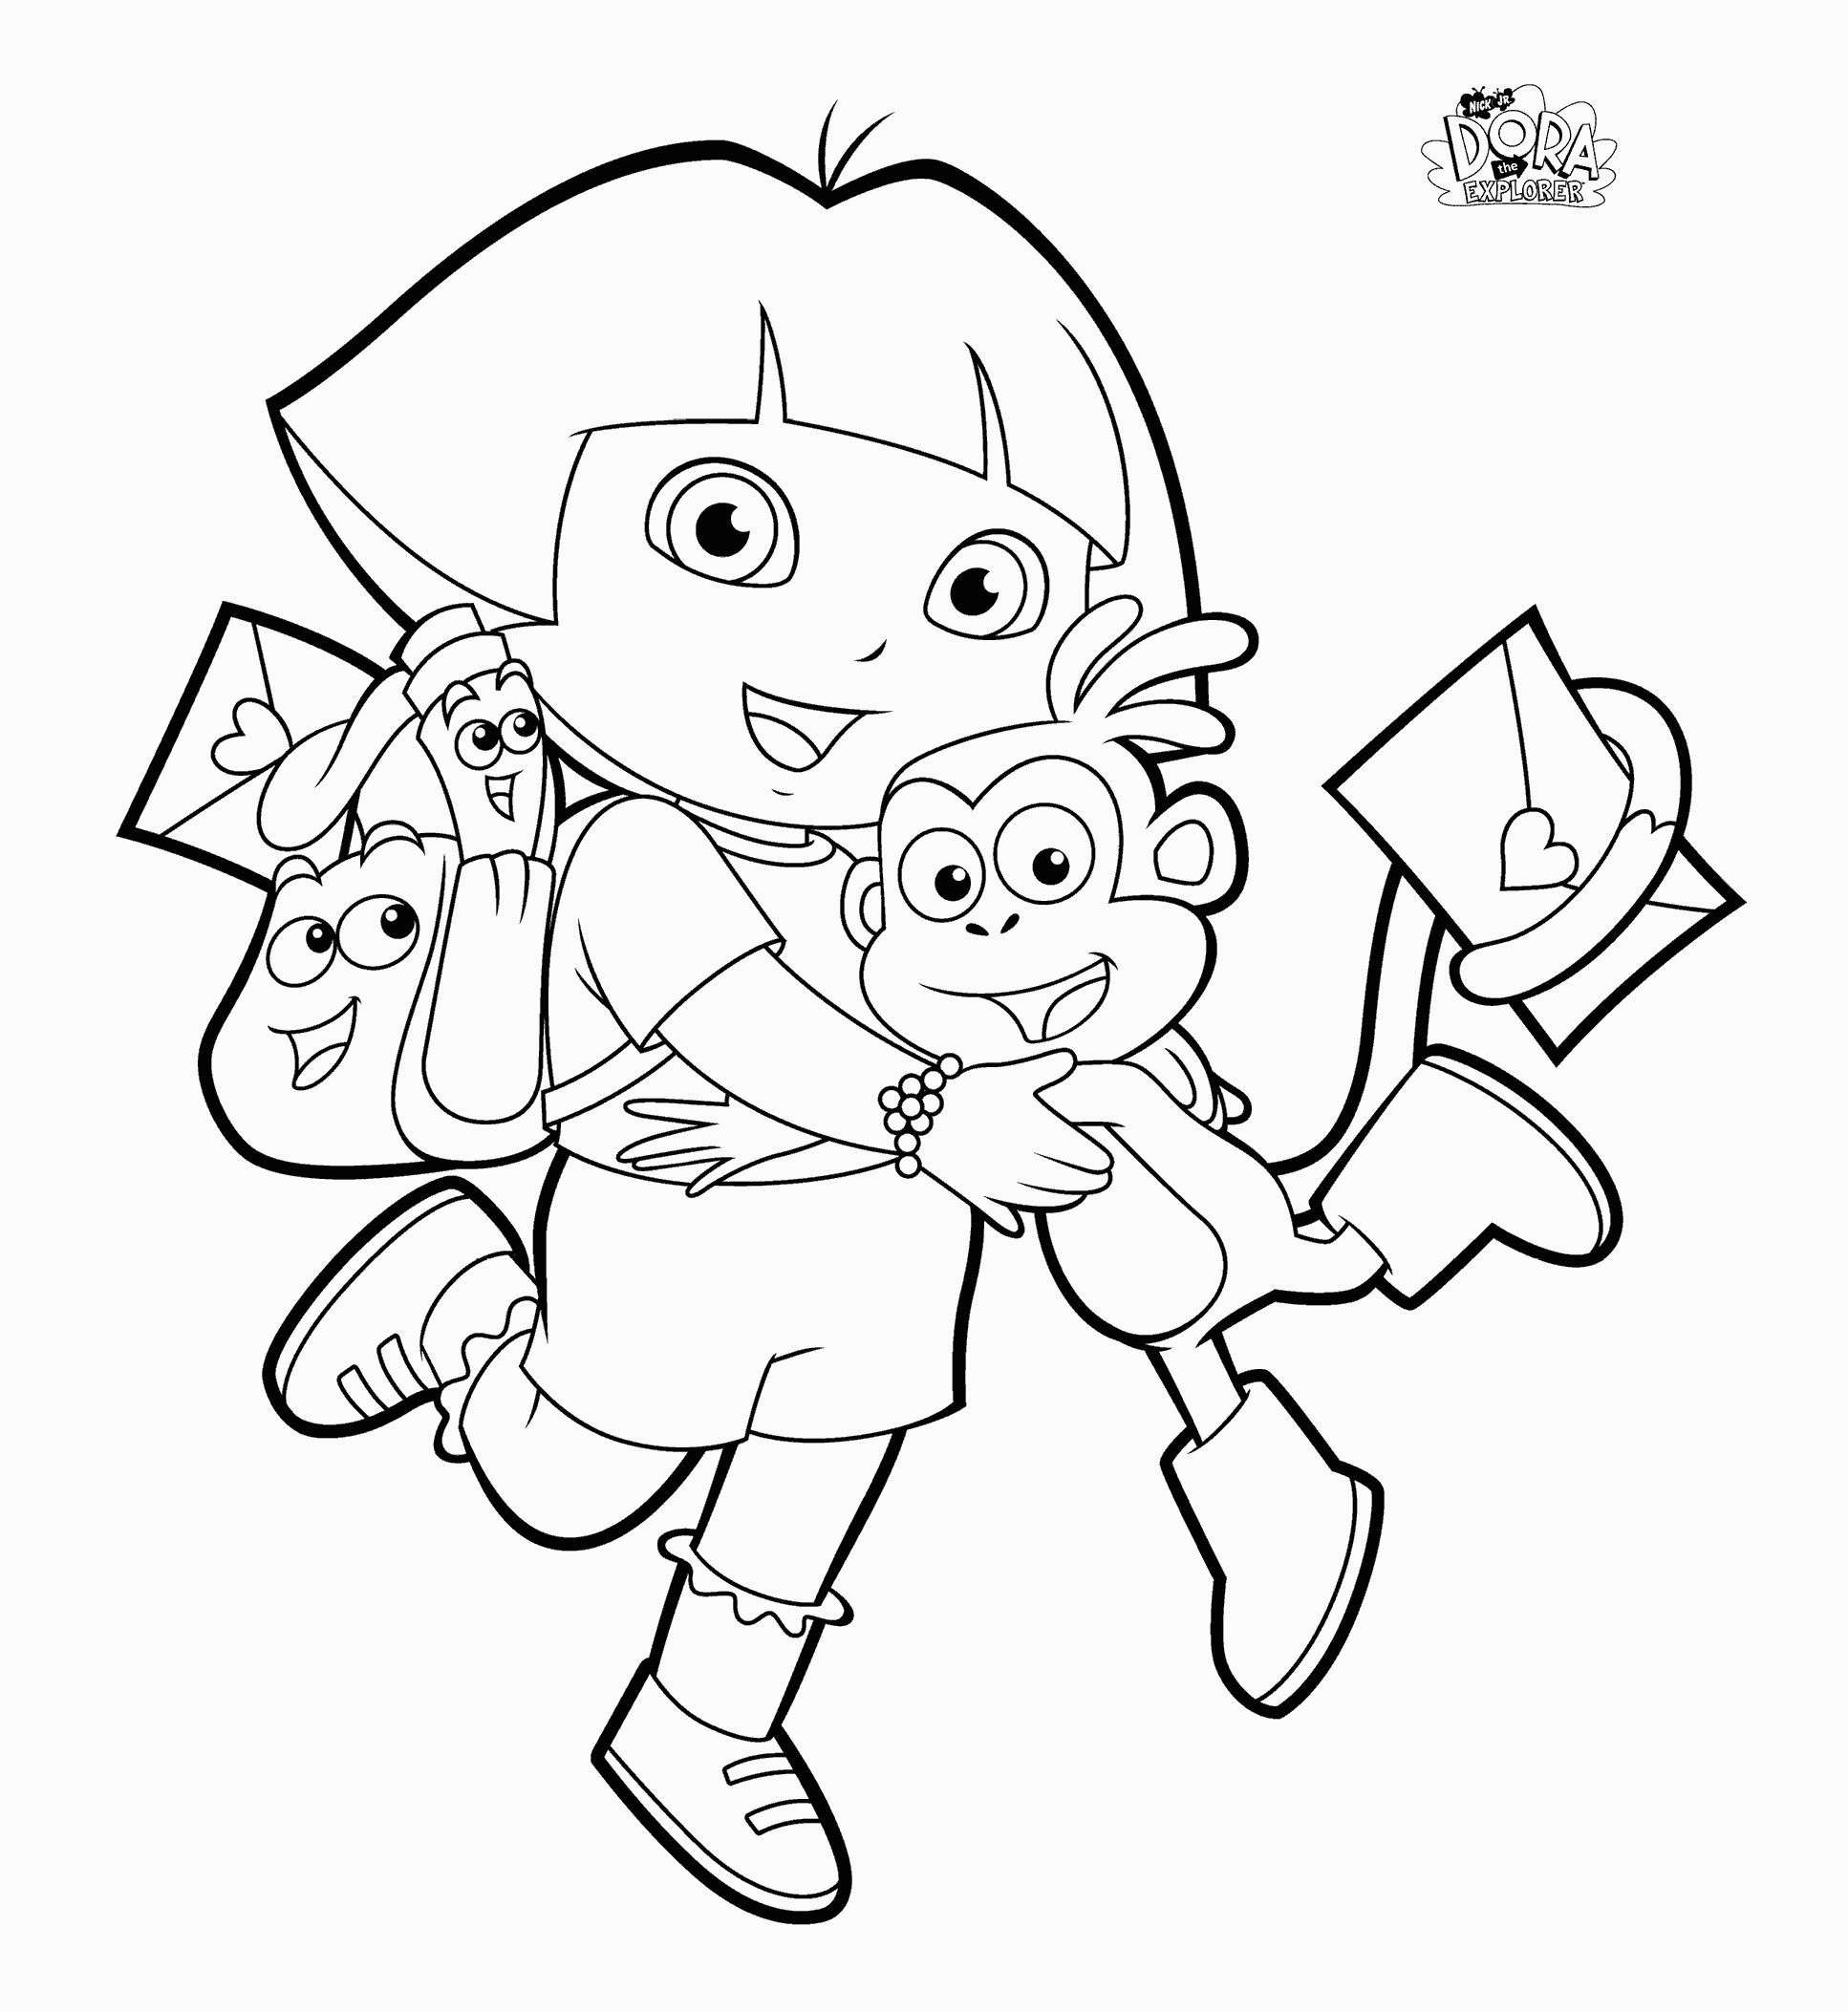 Backpack Coloring Page Coloring Pages Dora Coloring Pages Backpack Boots Swiper Print For